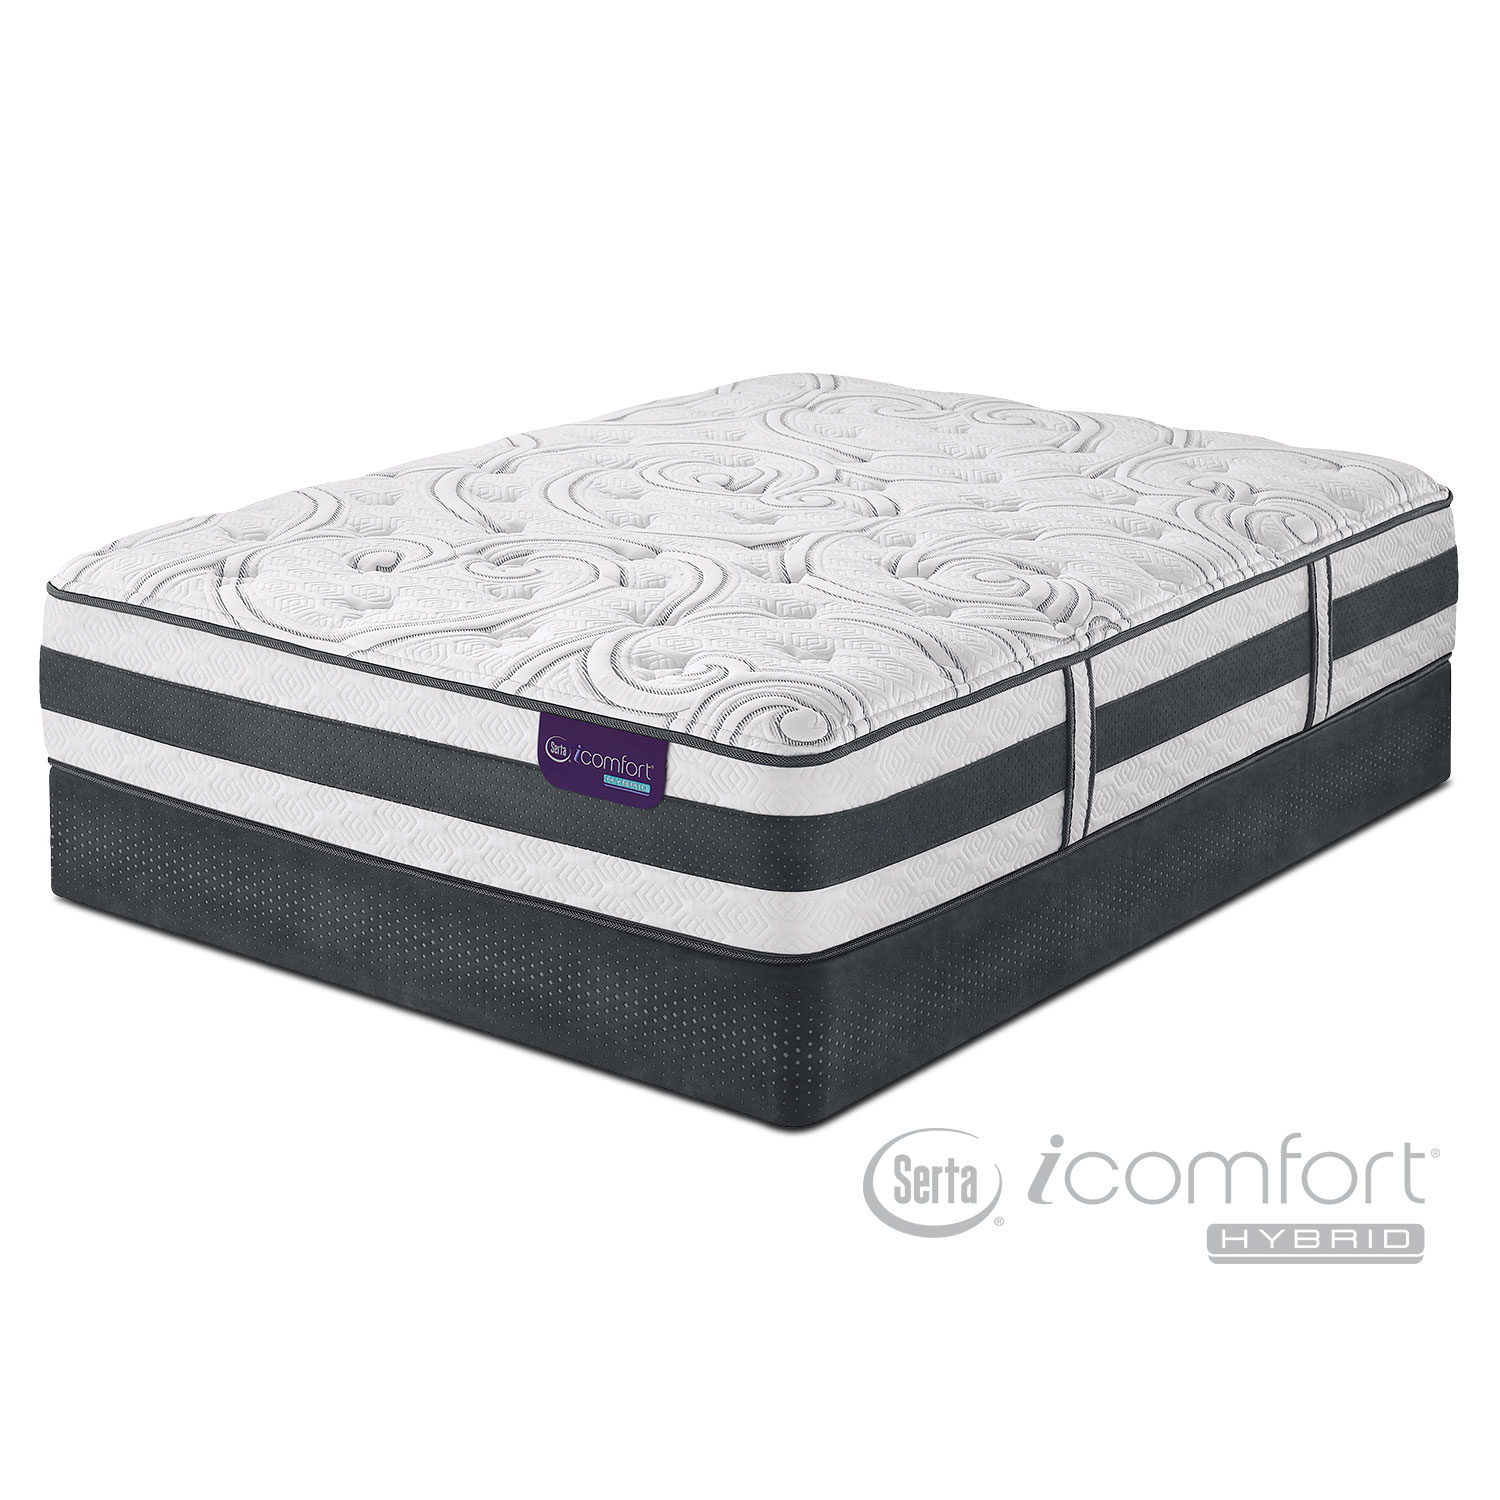 Mattresses and Bedding - Applause II Plush King Mattress/Split Foundation Set